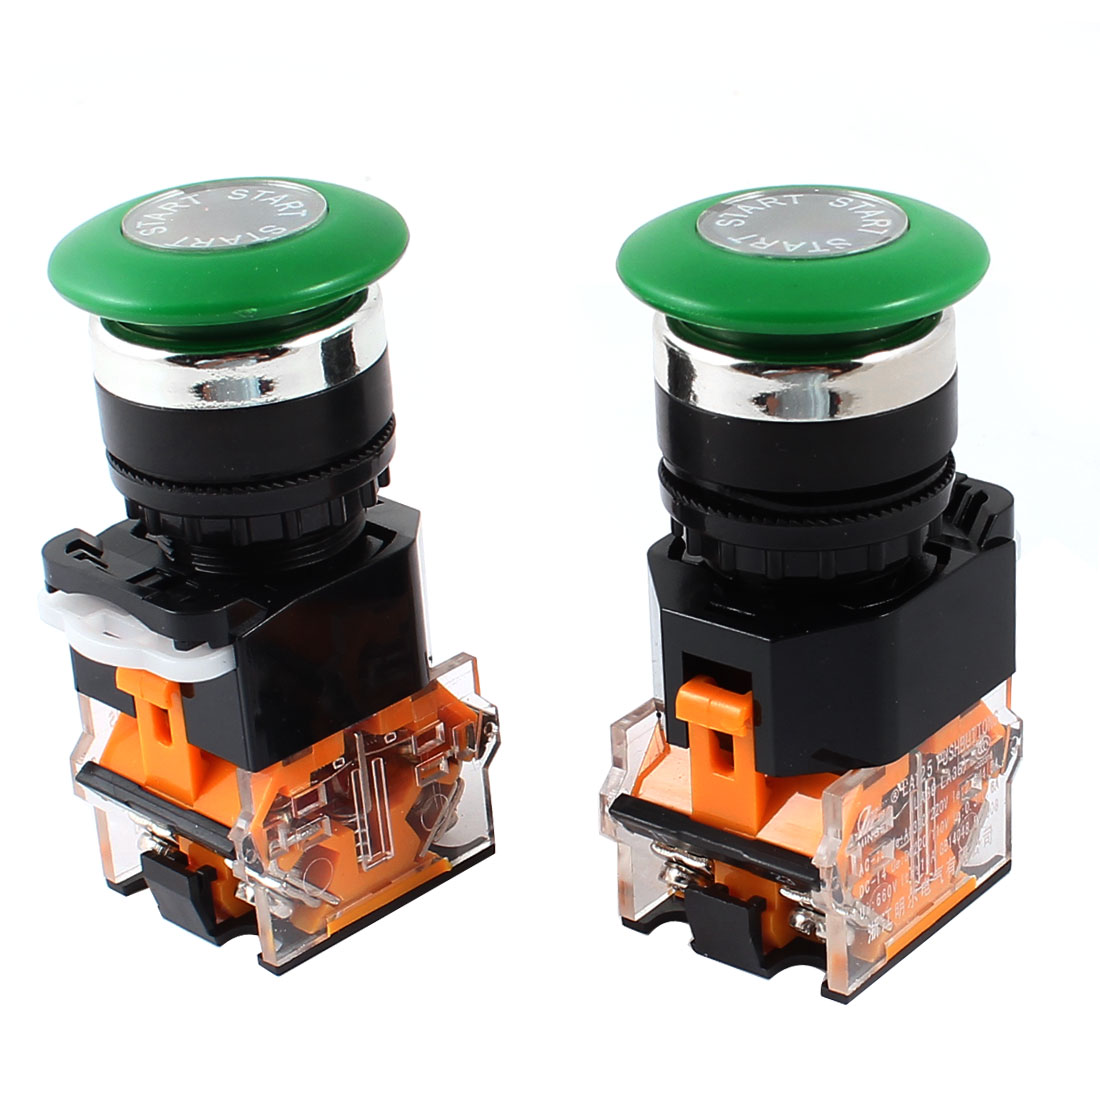 AC 660V 10A DPST Green Mushroom Cap Momentary Emergency Stop Press Button Switch 2Pcs